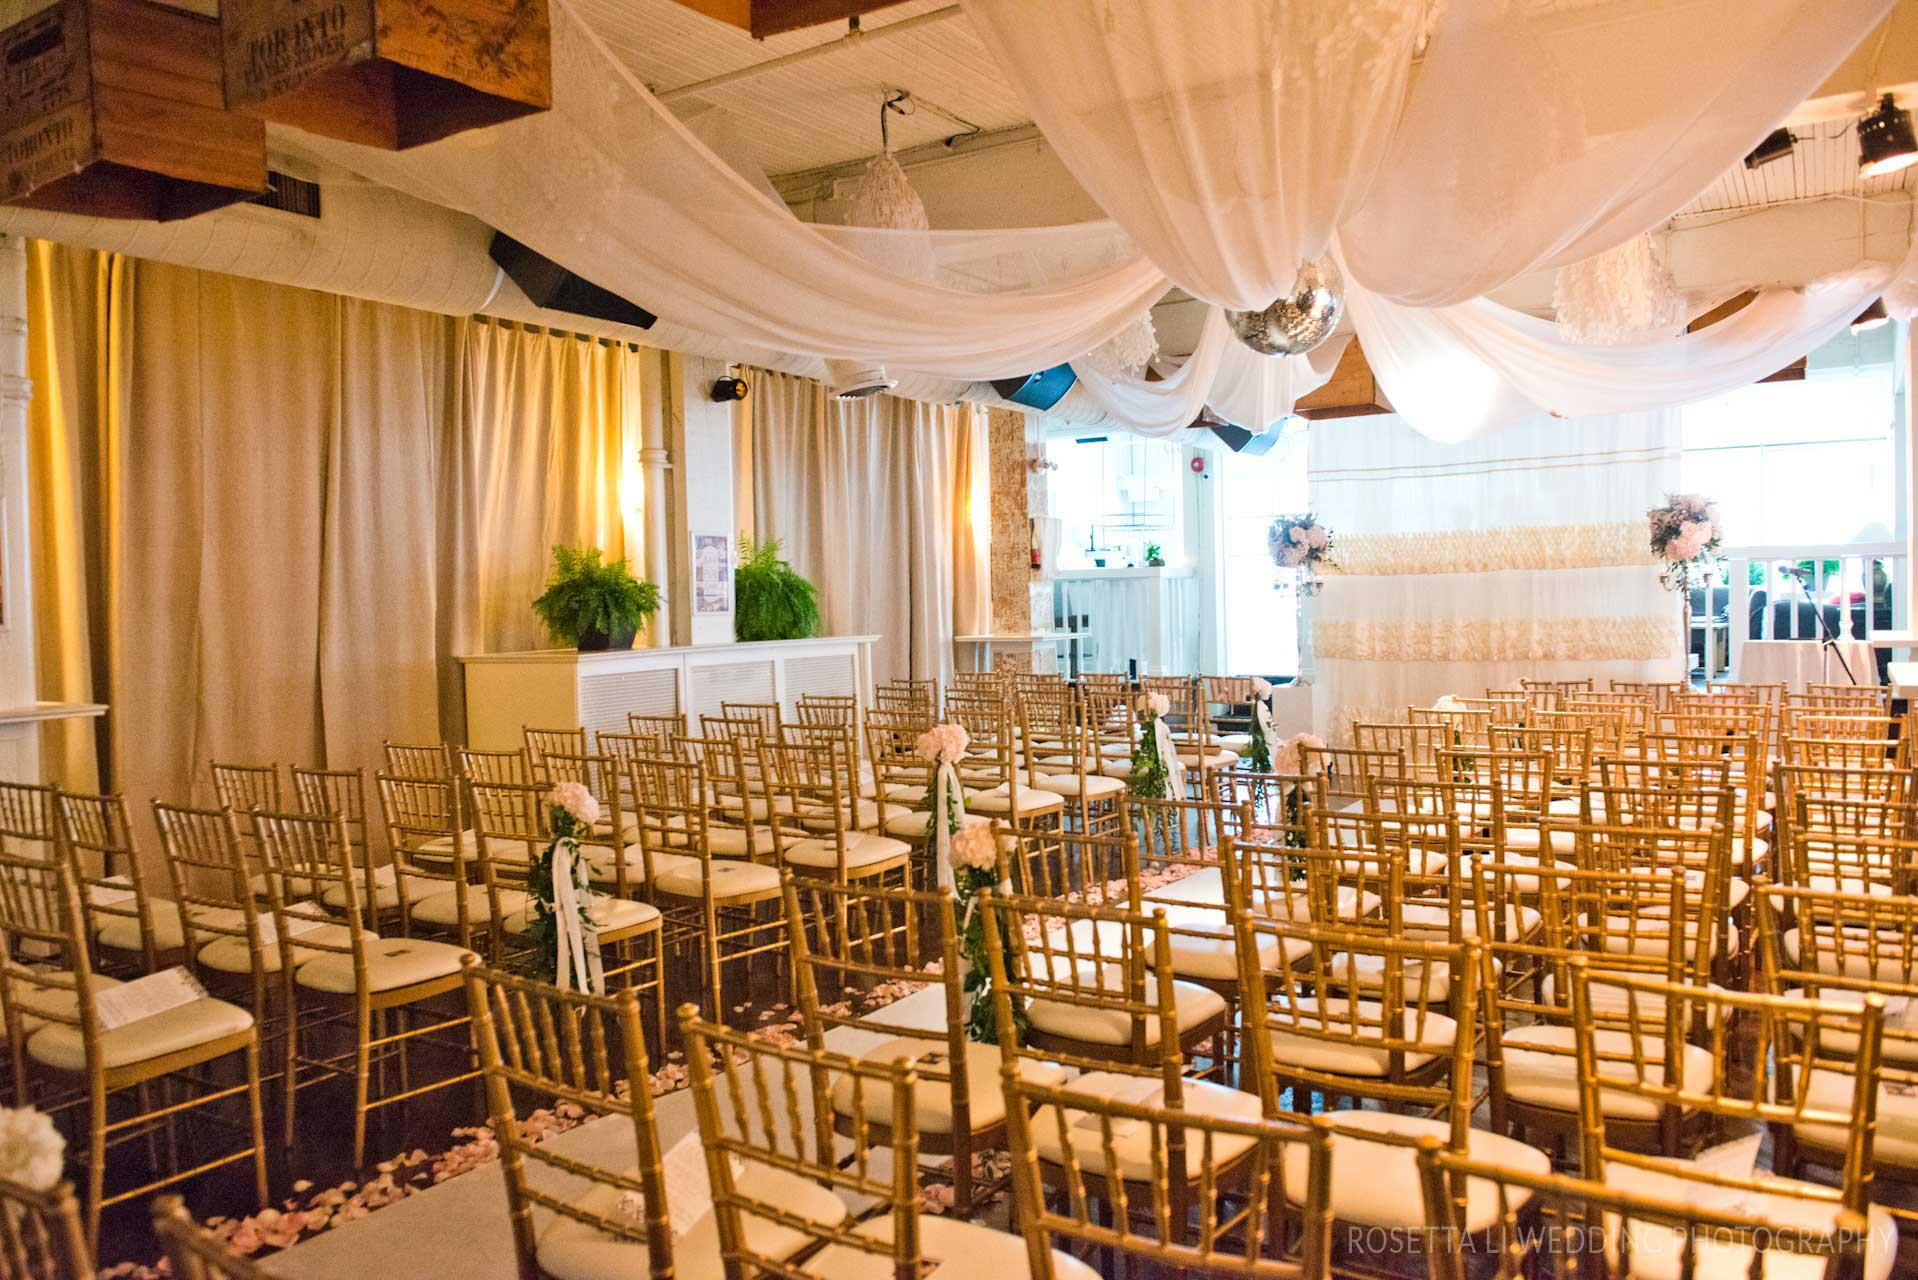 Wedding Venues Toronto - Wedding Ceremony in an Urban Loft